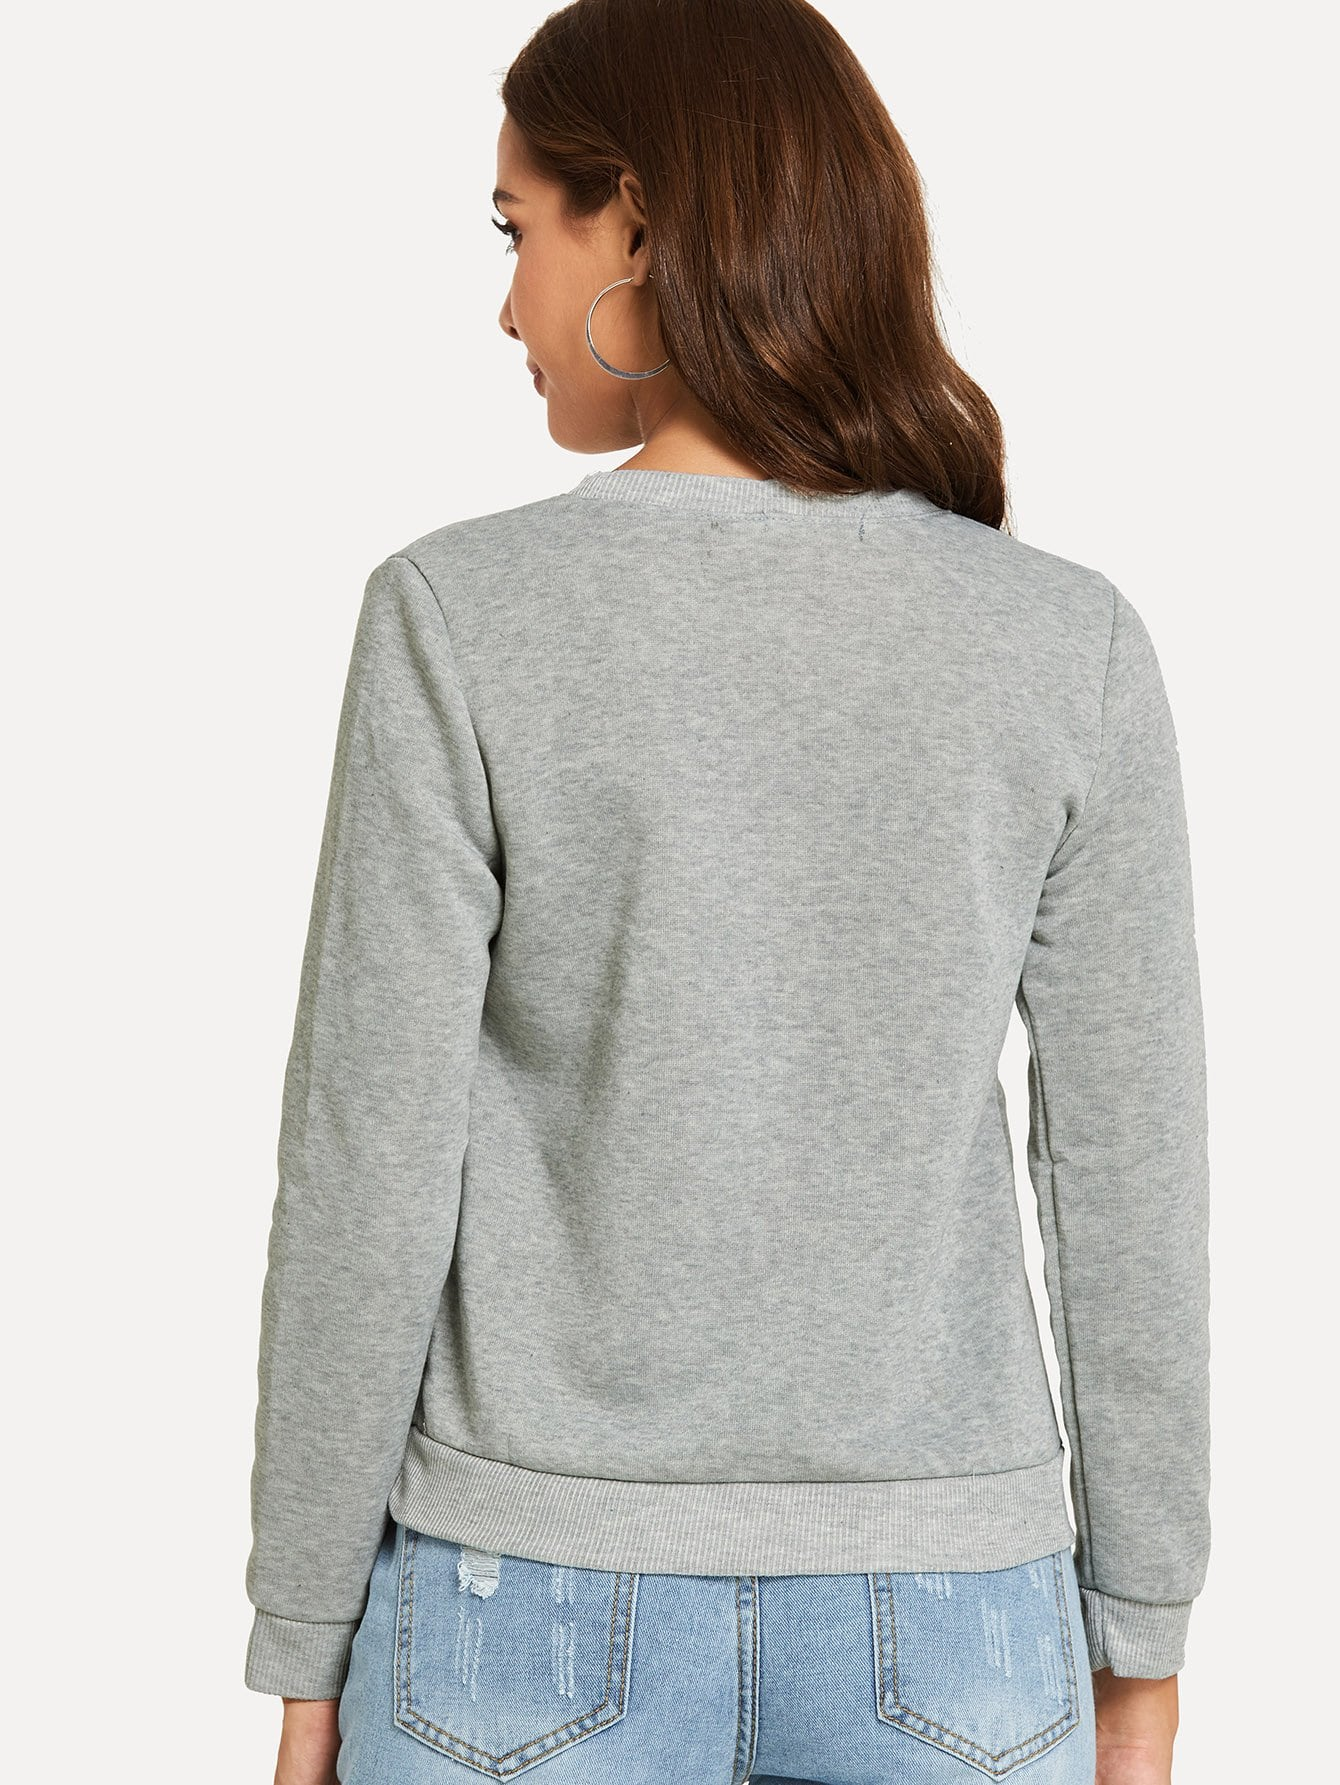 New Design Marled Knit Sweatshirt